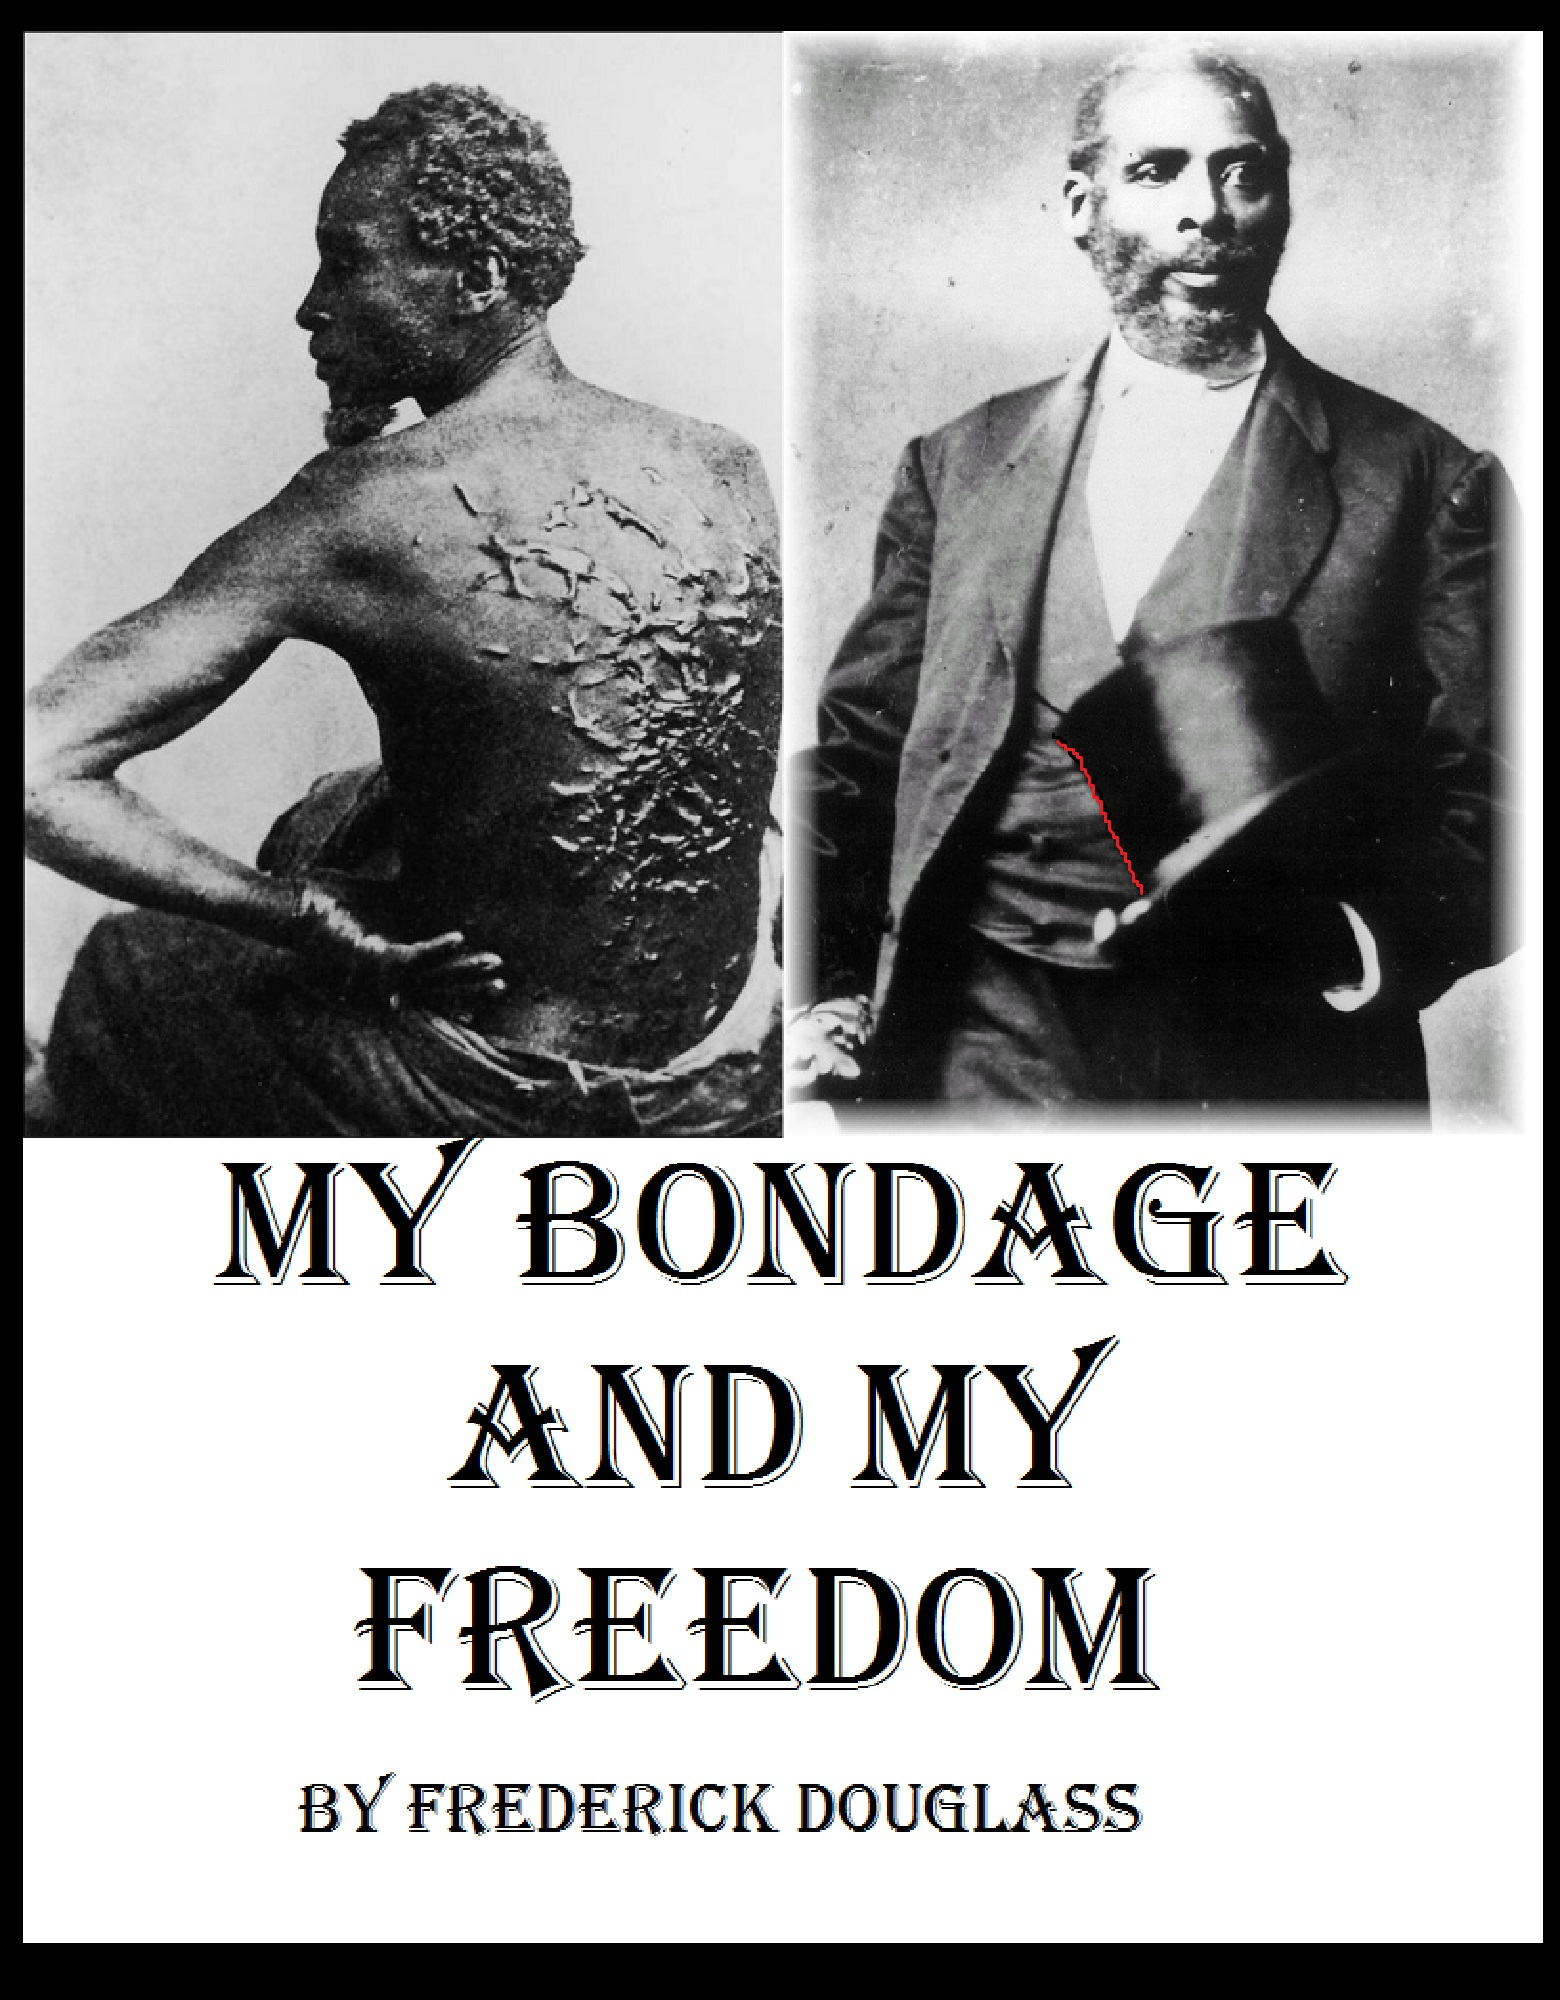 an analysis of the book my bondage and my freedom by frederick douglass My bondage and my freedom: analysis of the main character frederick douglass essaysfirst published in 1855, this book tells the story of fredrick douglass.